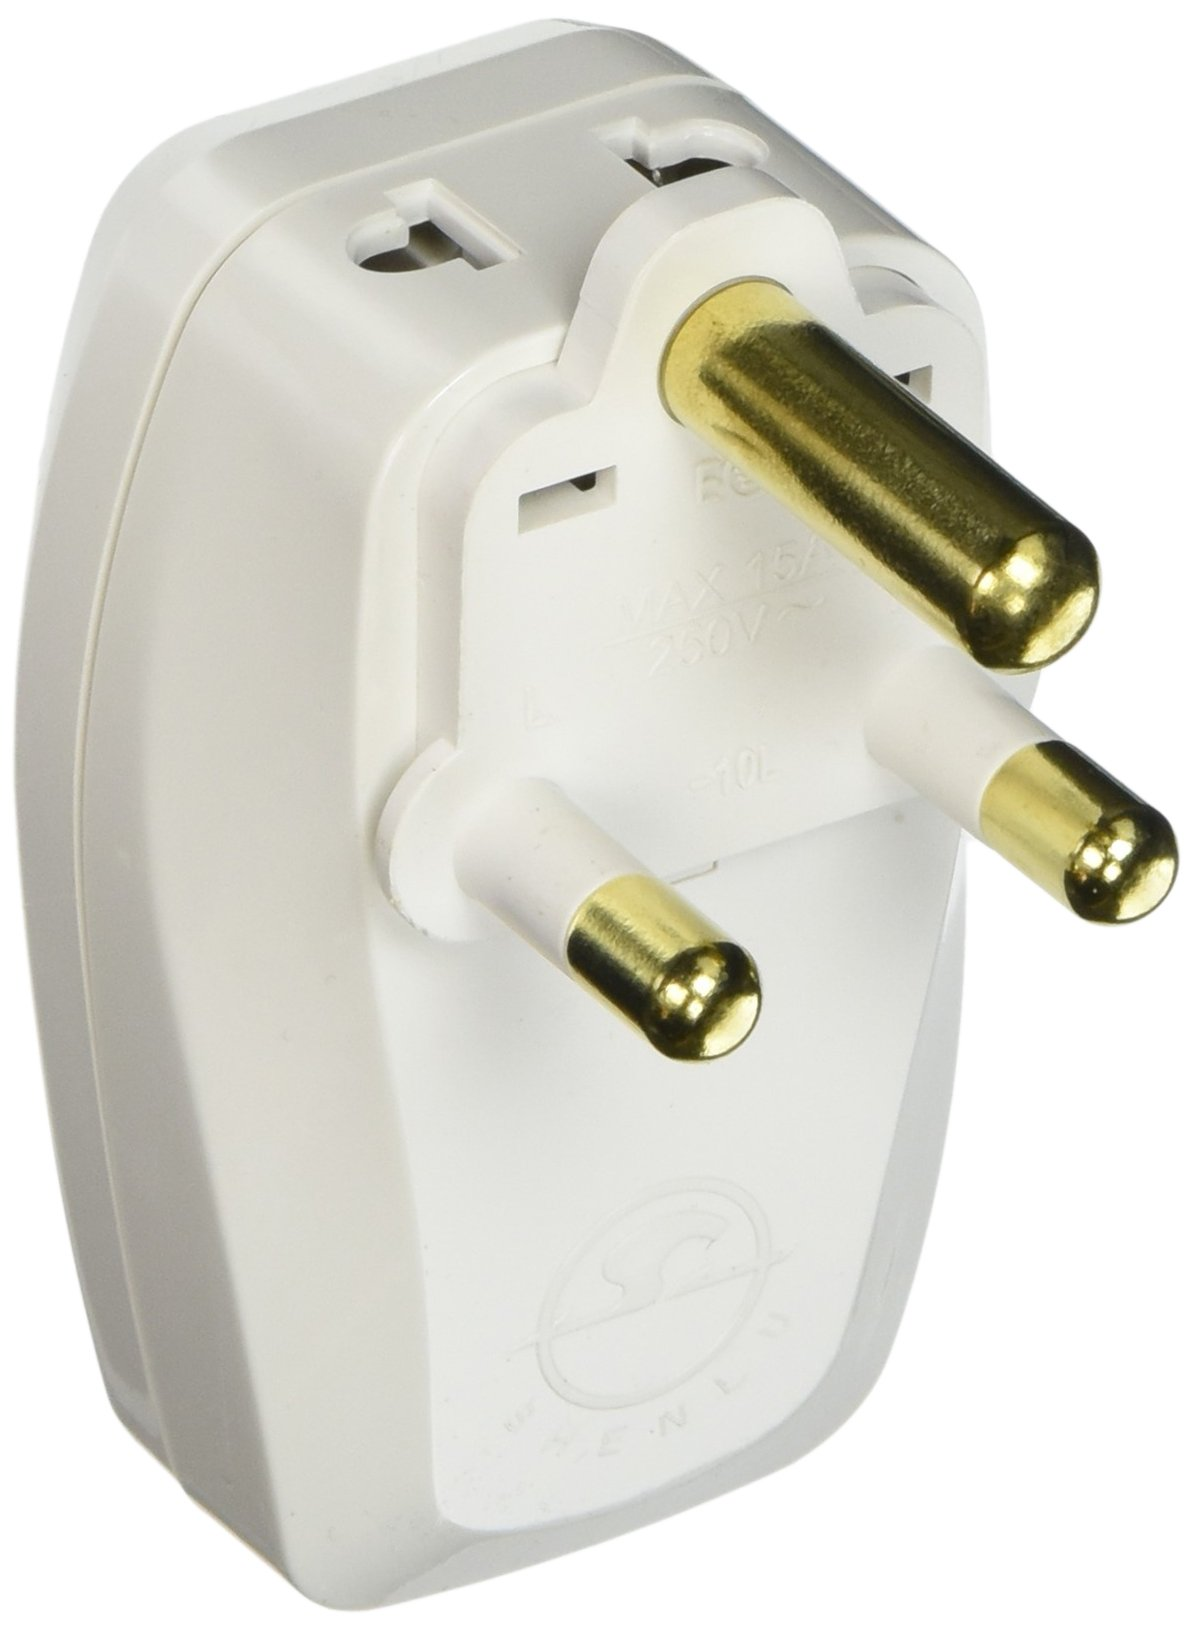 OREI 3 in 1 South Africa Travel Adapter Plug with USB and Surge Protection - Grounded Type M - S. Africa & More